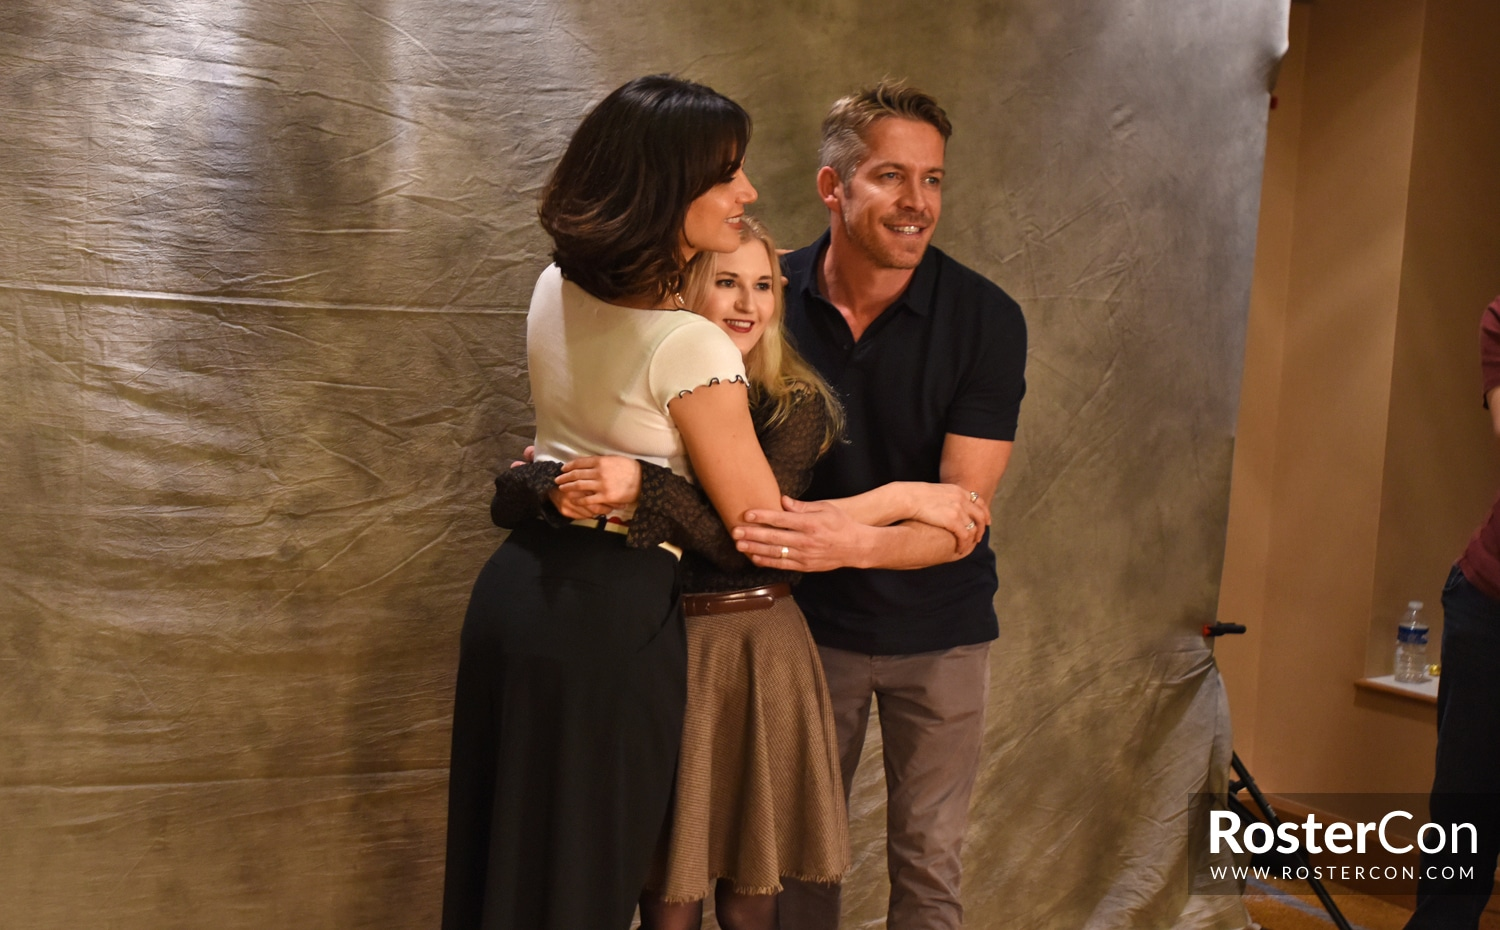 Lana Parrilla & Sean Maguire - The Happy Ending Convention 3 - Once Upon A Time